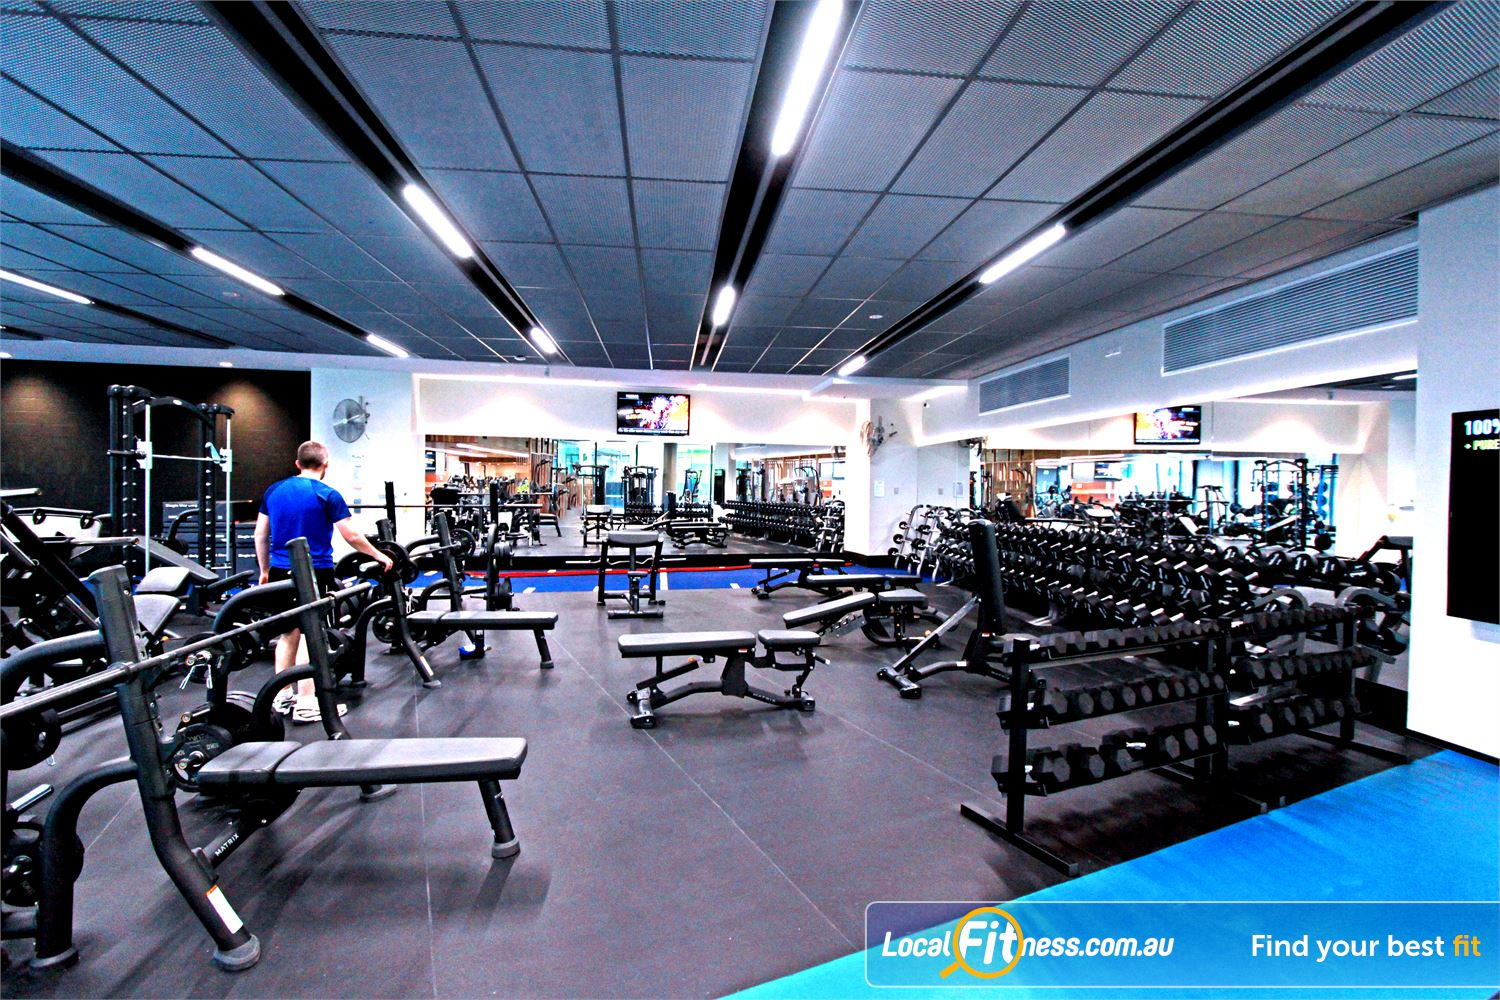 Goodlife Health Clubs Docklands The spacious free-weights area in our Docklands gym.